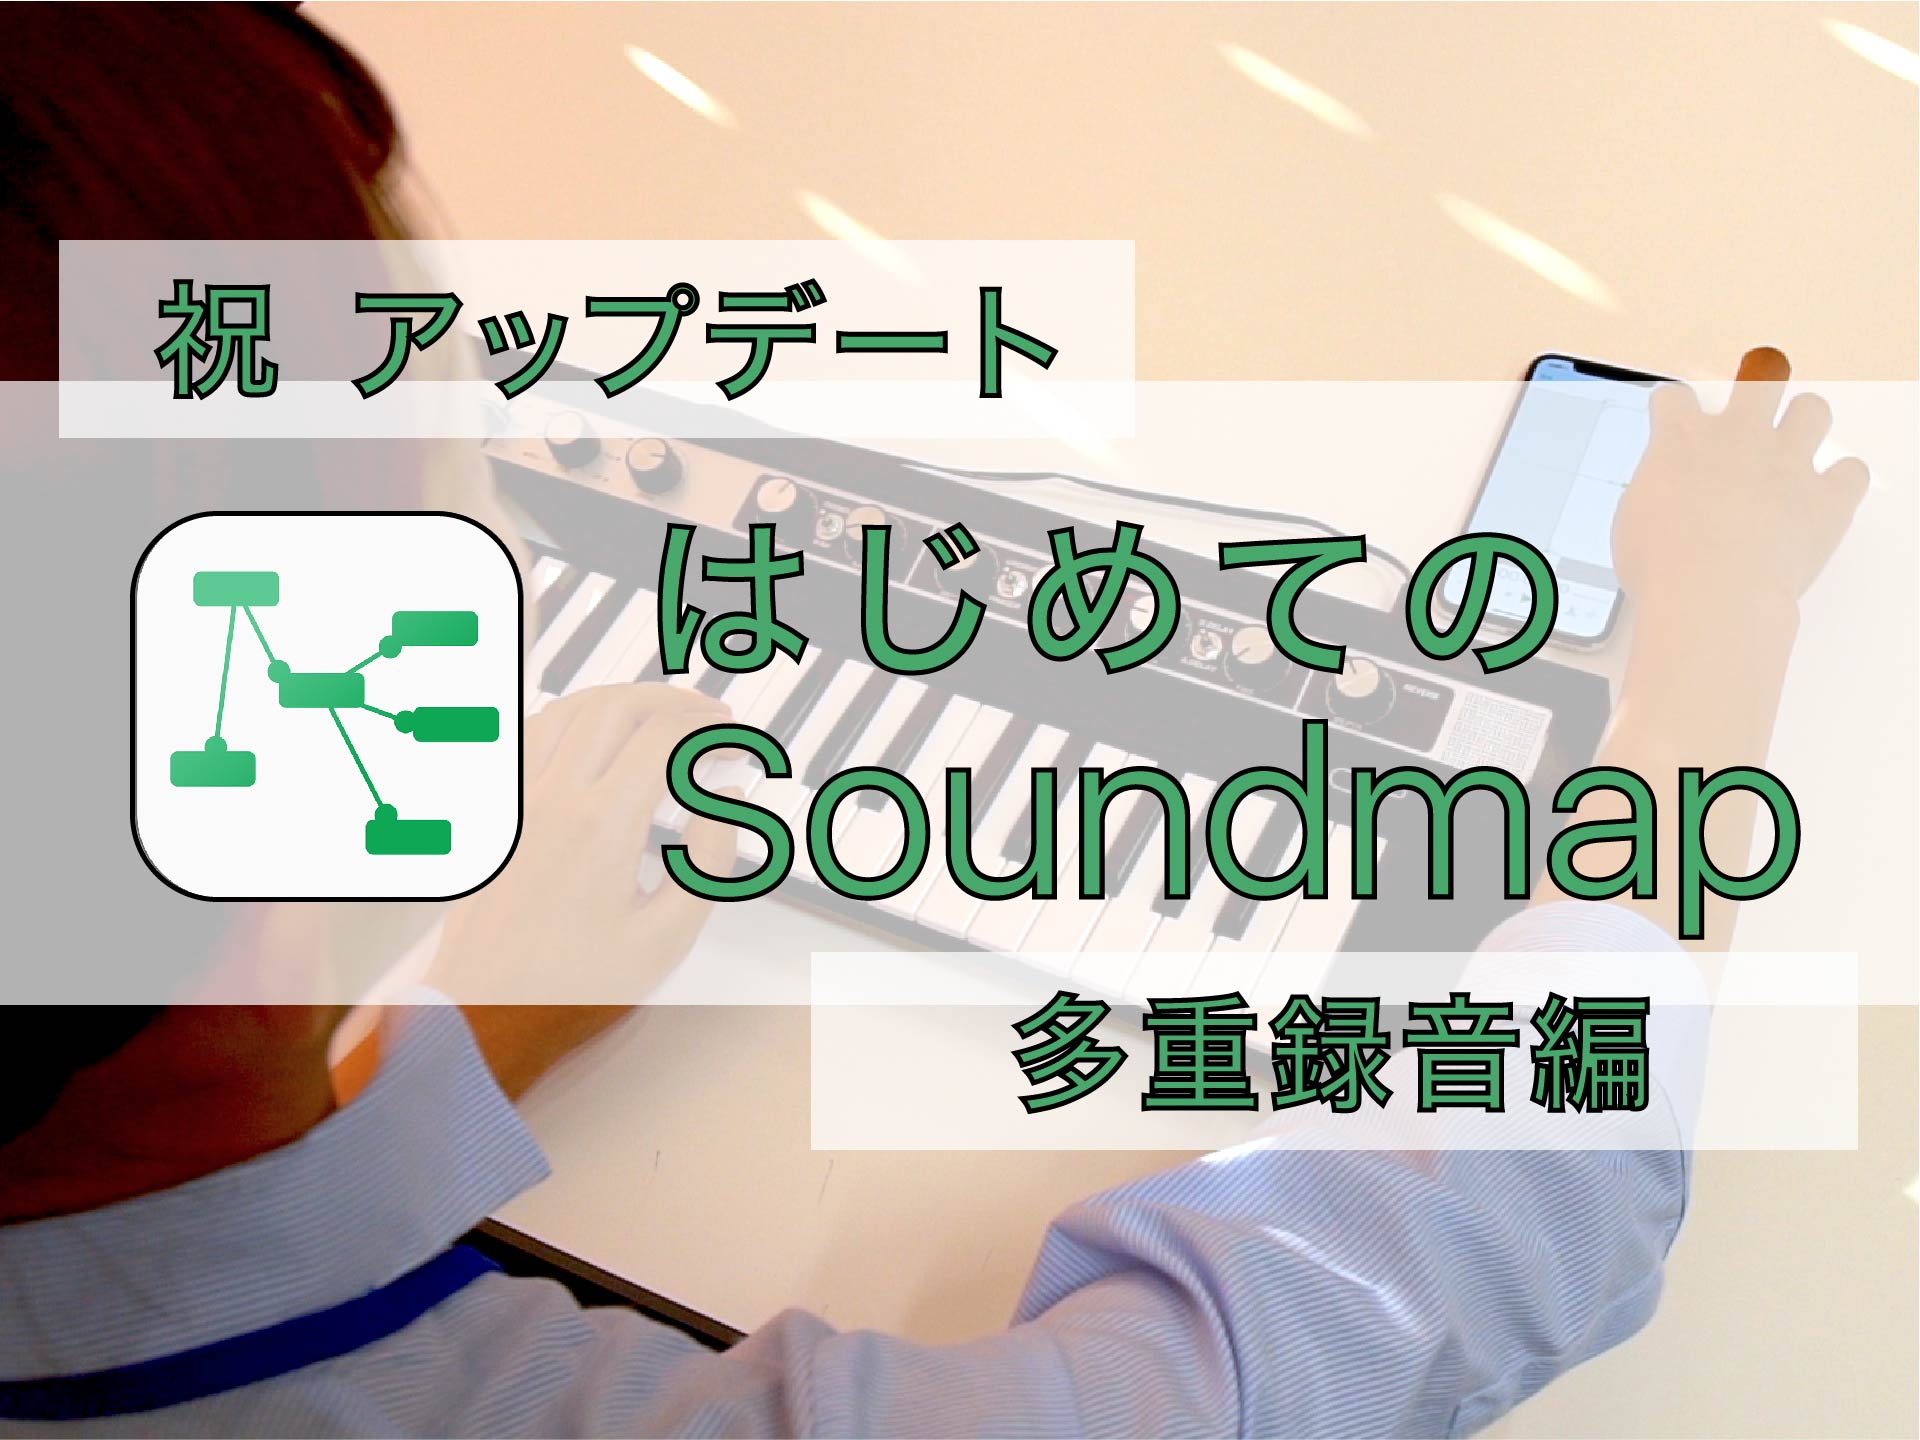 Soundmap_サムネ_多重録音編-01